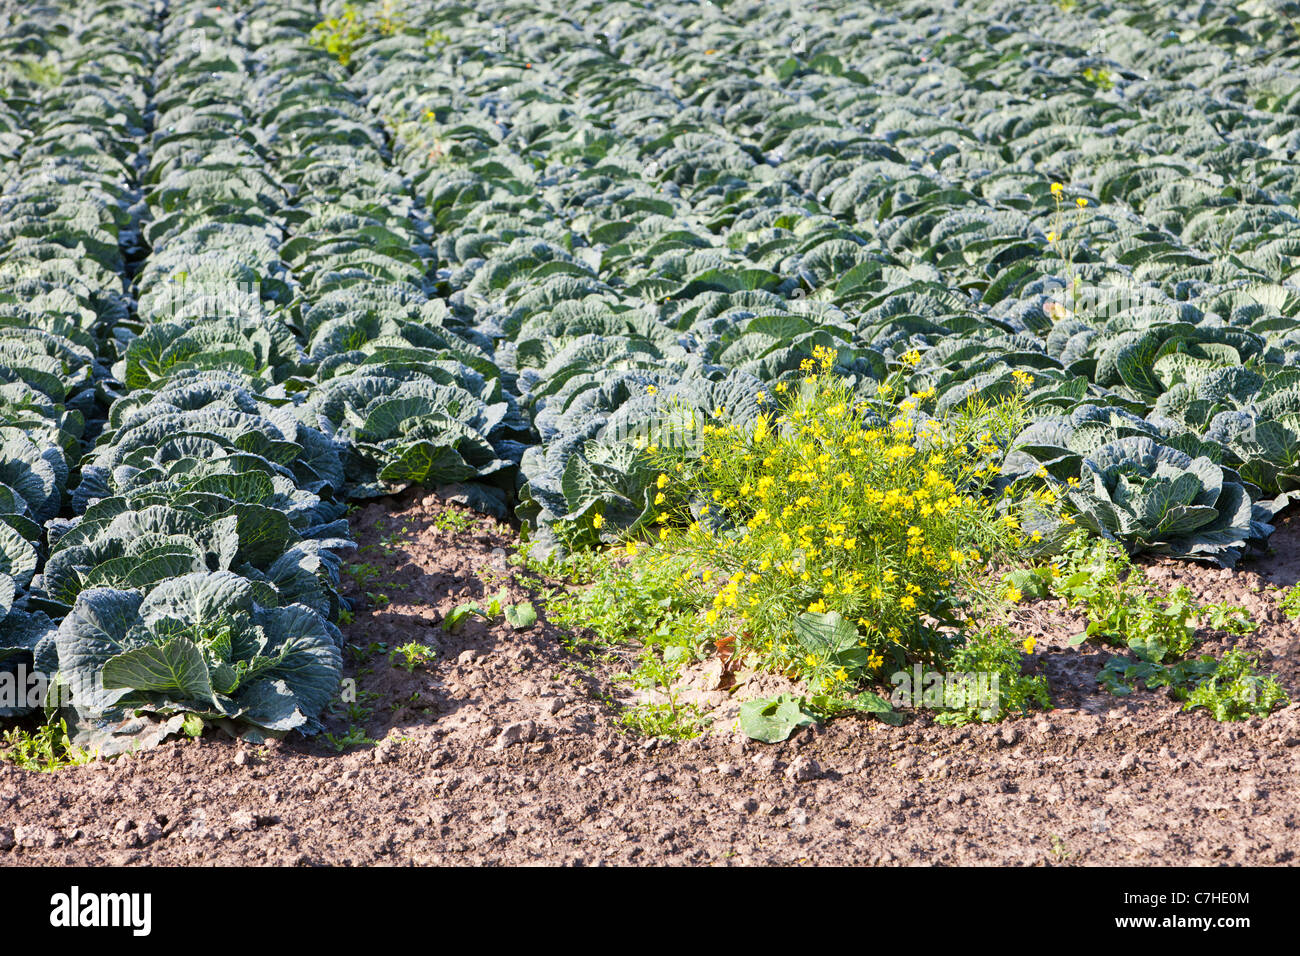 Cabbage growing on a farm on the Lancashire mosslands near Banks on the outskirts of Southport, Lancashire, UK. - Stock Image